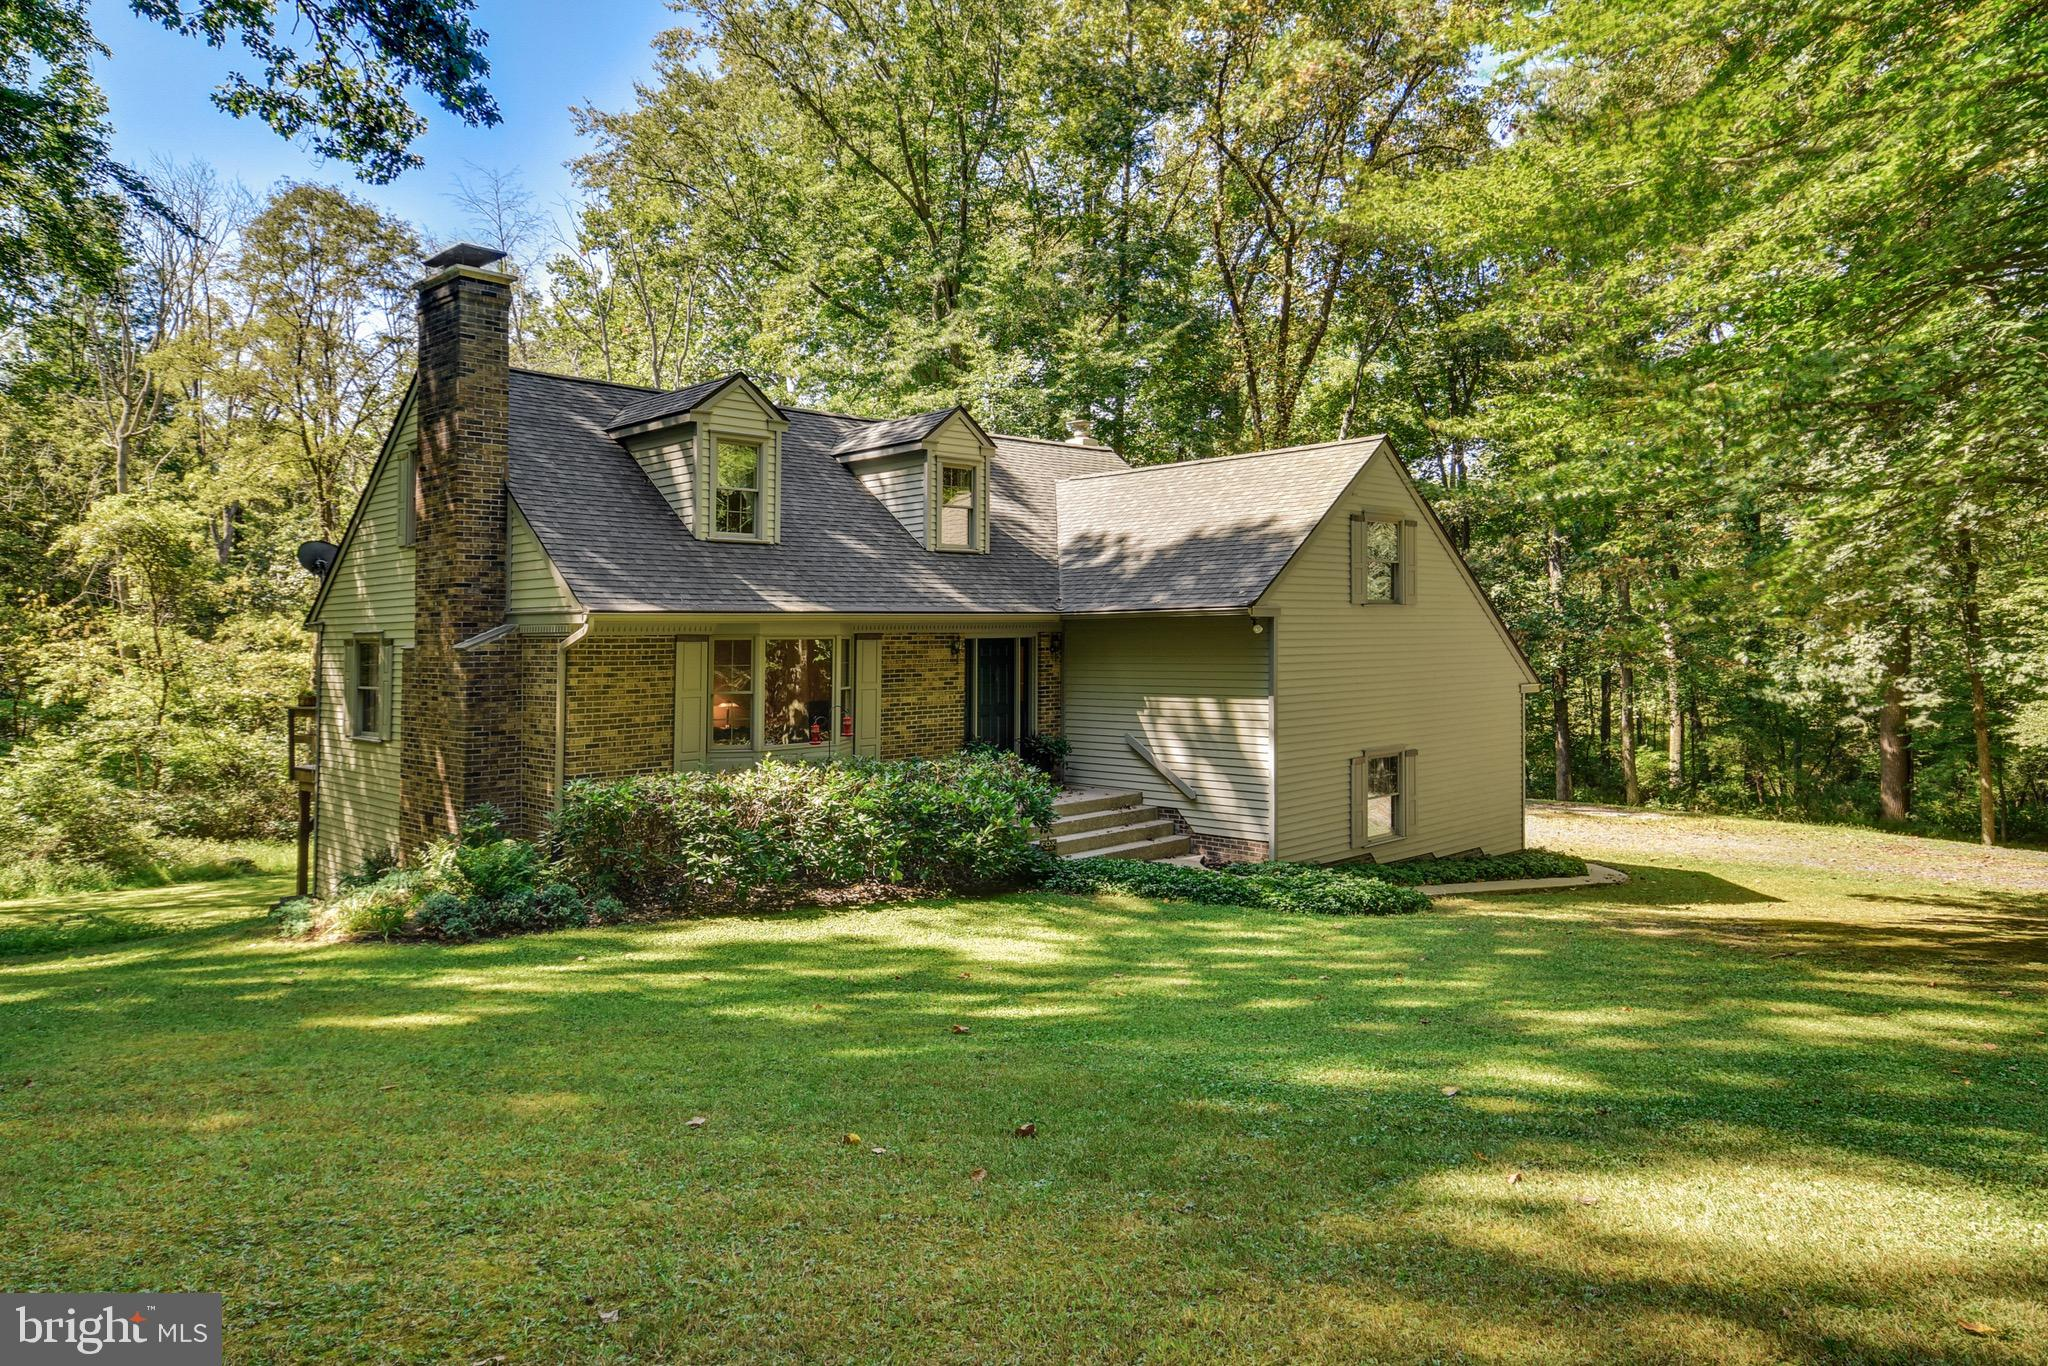 544 COON HOLLOW ROAD, RIEGELSVILLE, PA 18077